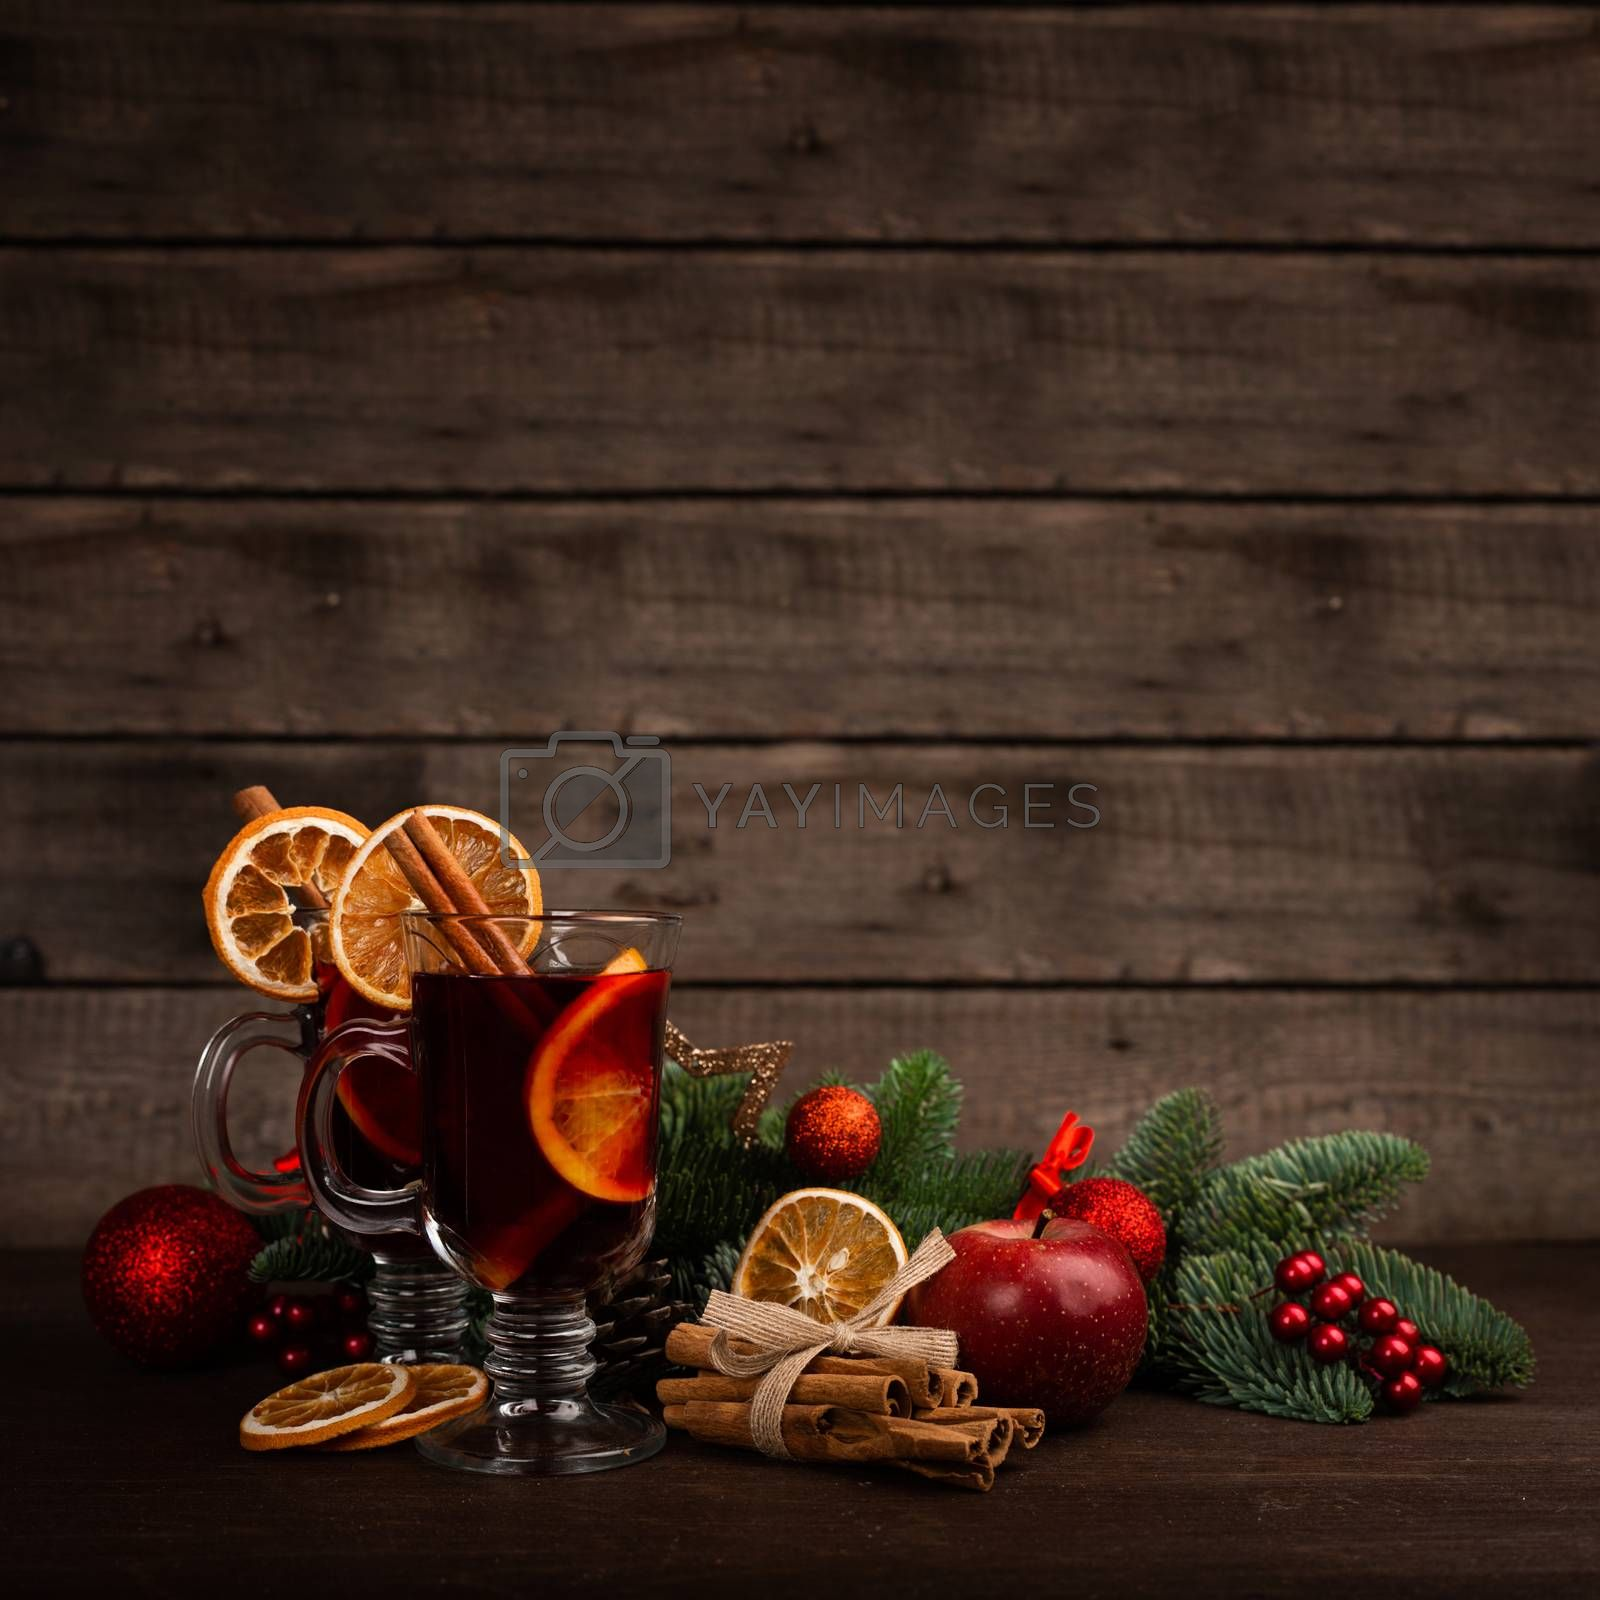 Mulled wine with cinnamon sticks orange fir tree branch and baubles Christmas composition over dark wooden background